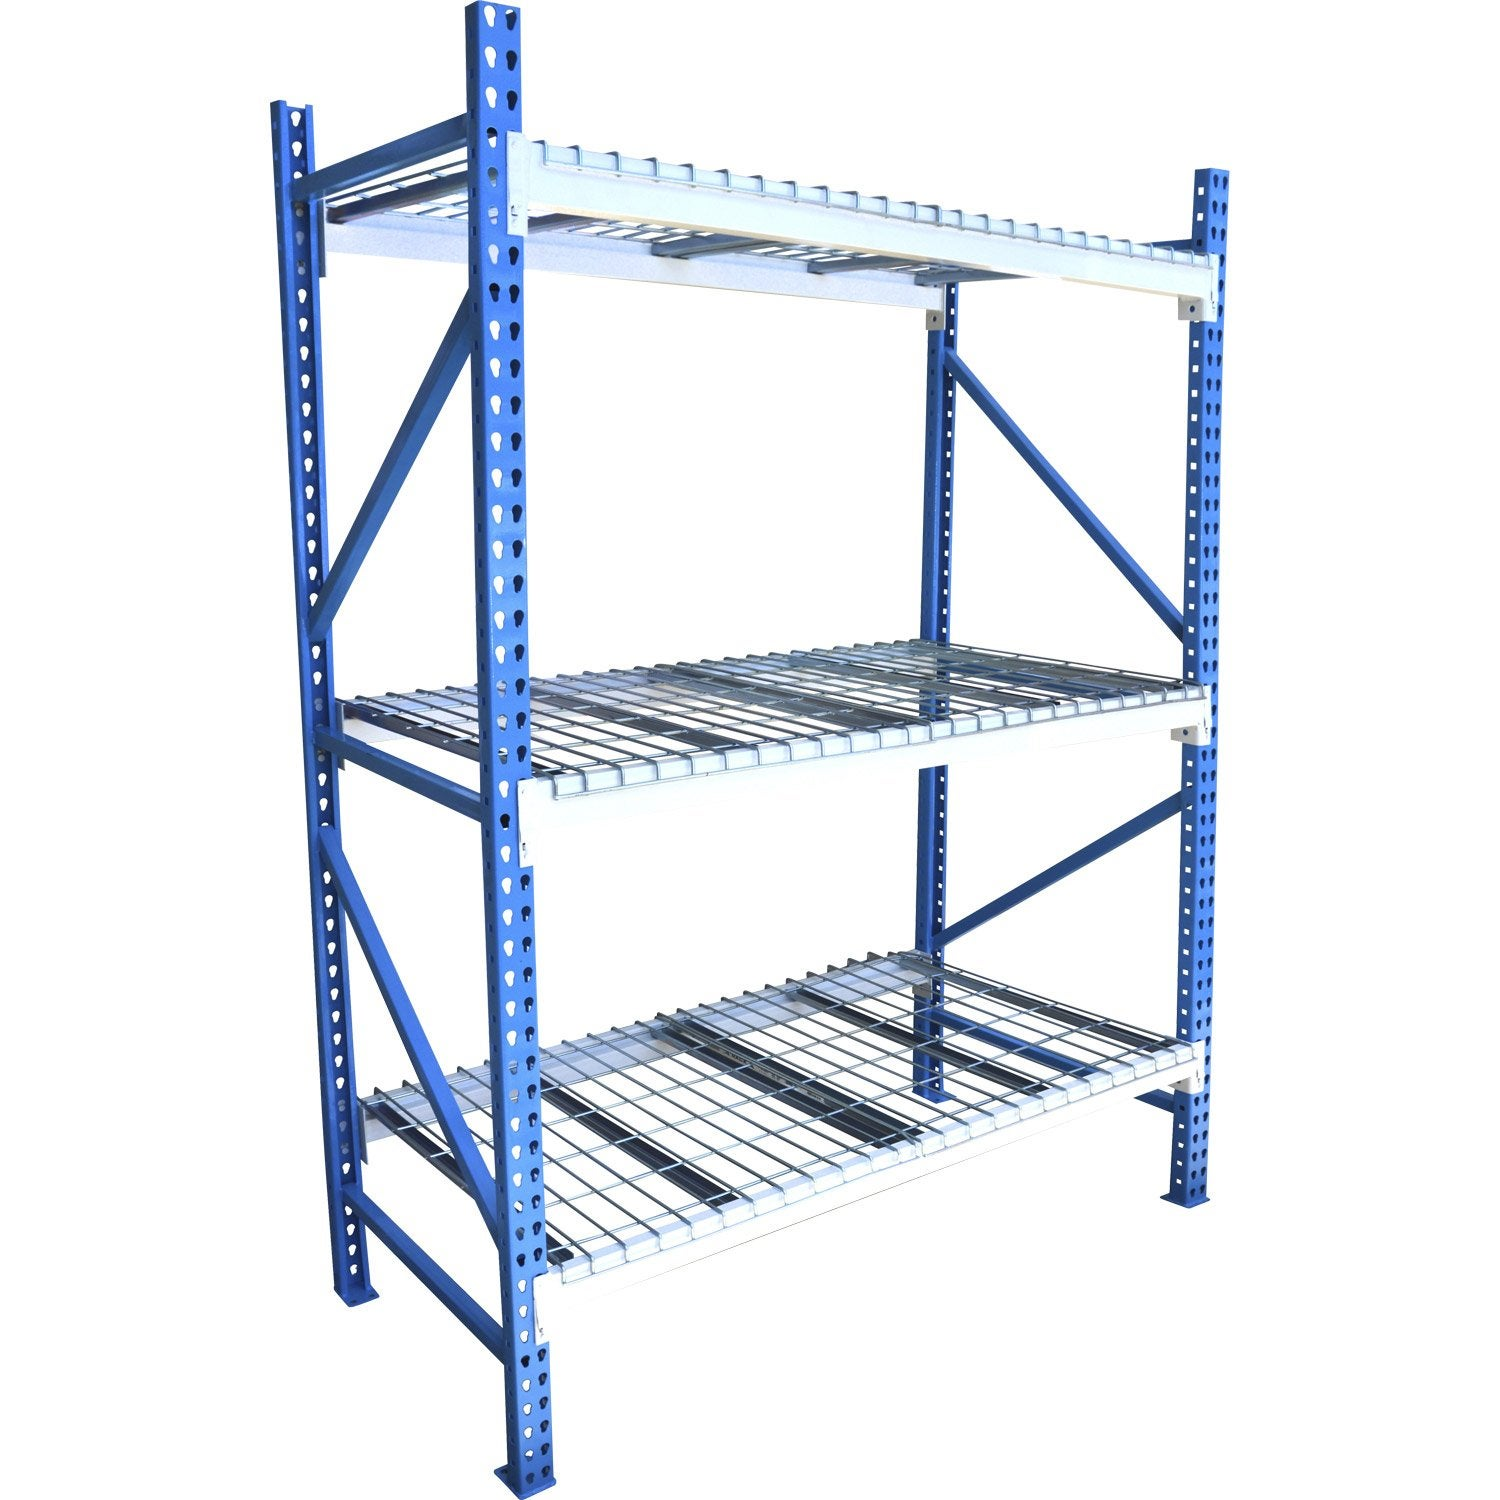 rack acier rack 3 tablettes bleu et blanc x x cm leroy merlin. Black Bedroom Furniture Sets. Home Design Ideas